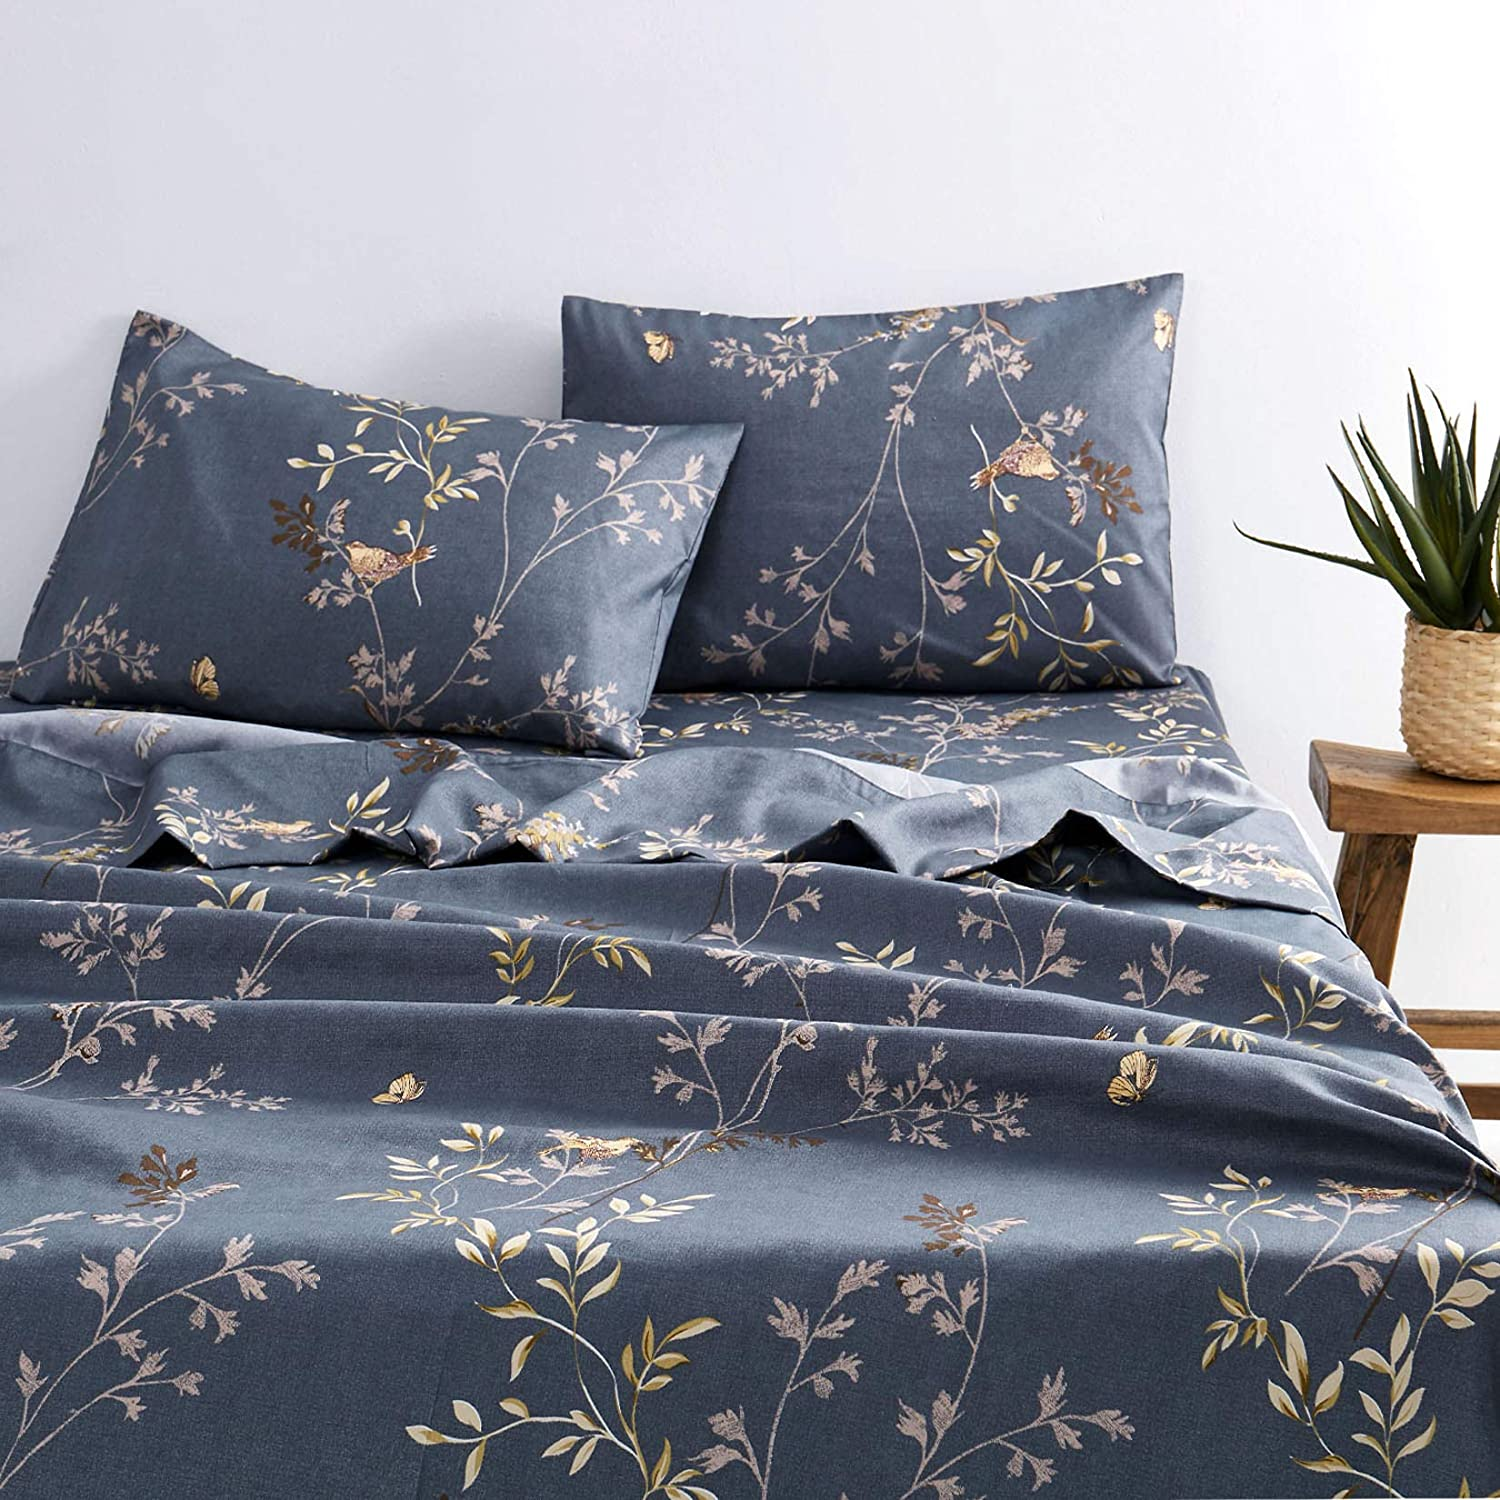 Wake In Cloud - Ranking integrated 1st place Gray Sheet Surprise price Leaves Patt Set Floral Birds Flowers